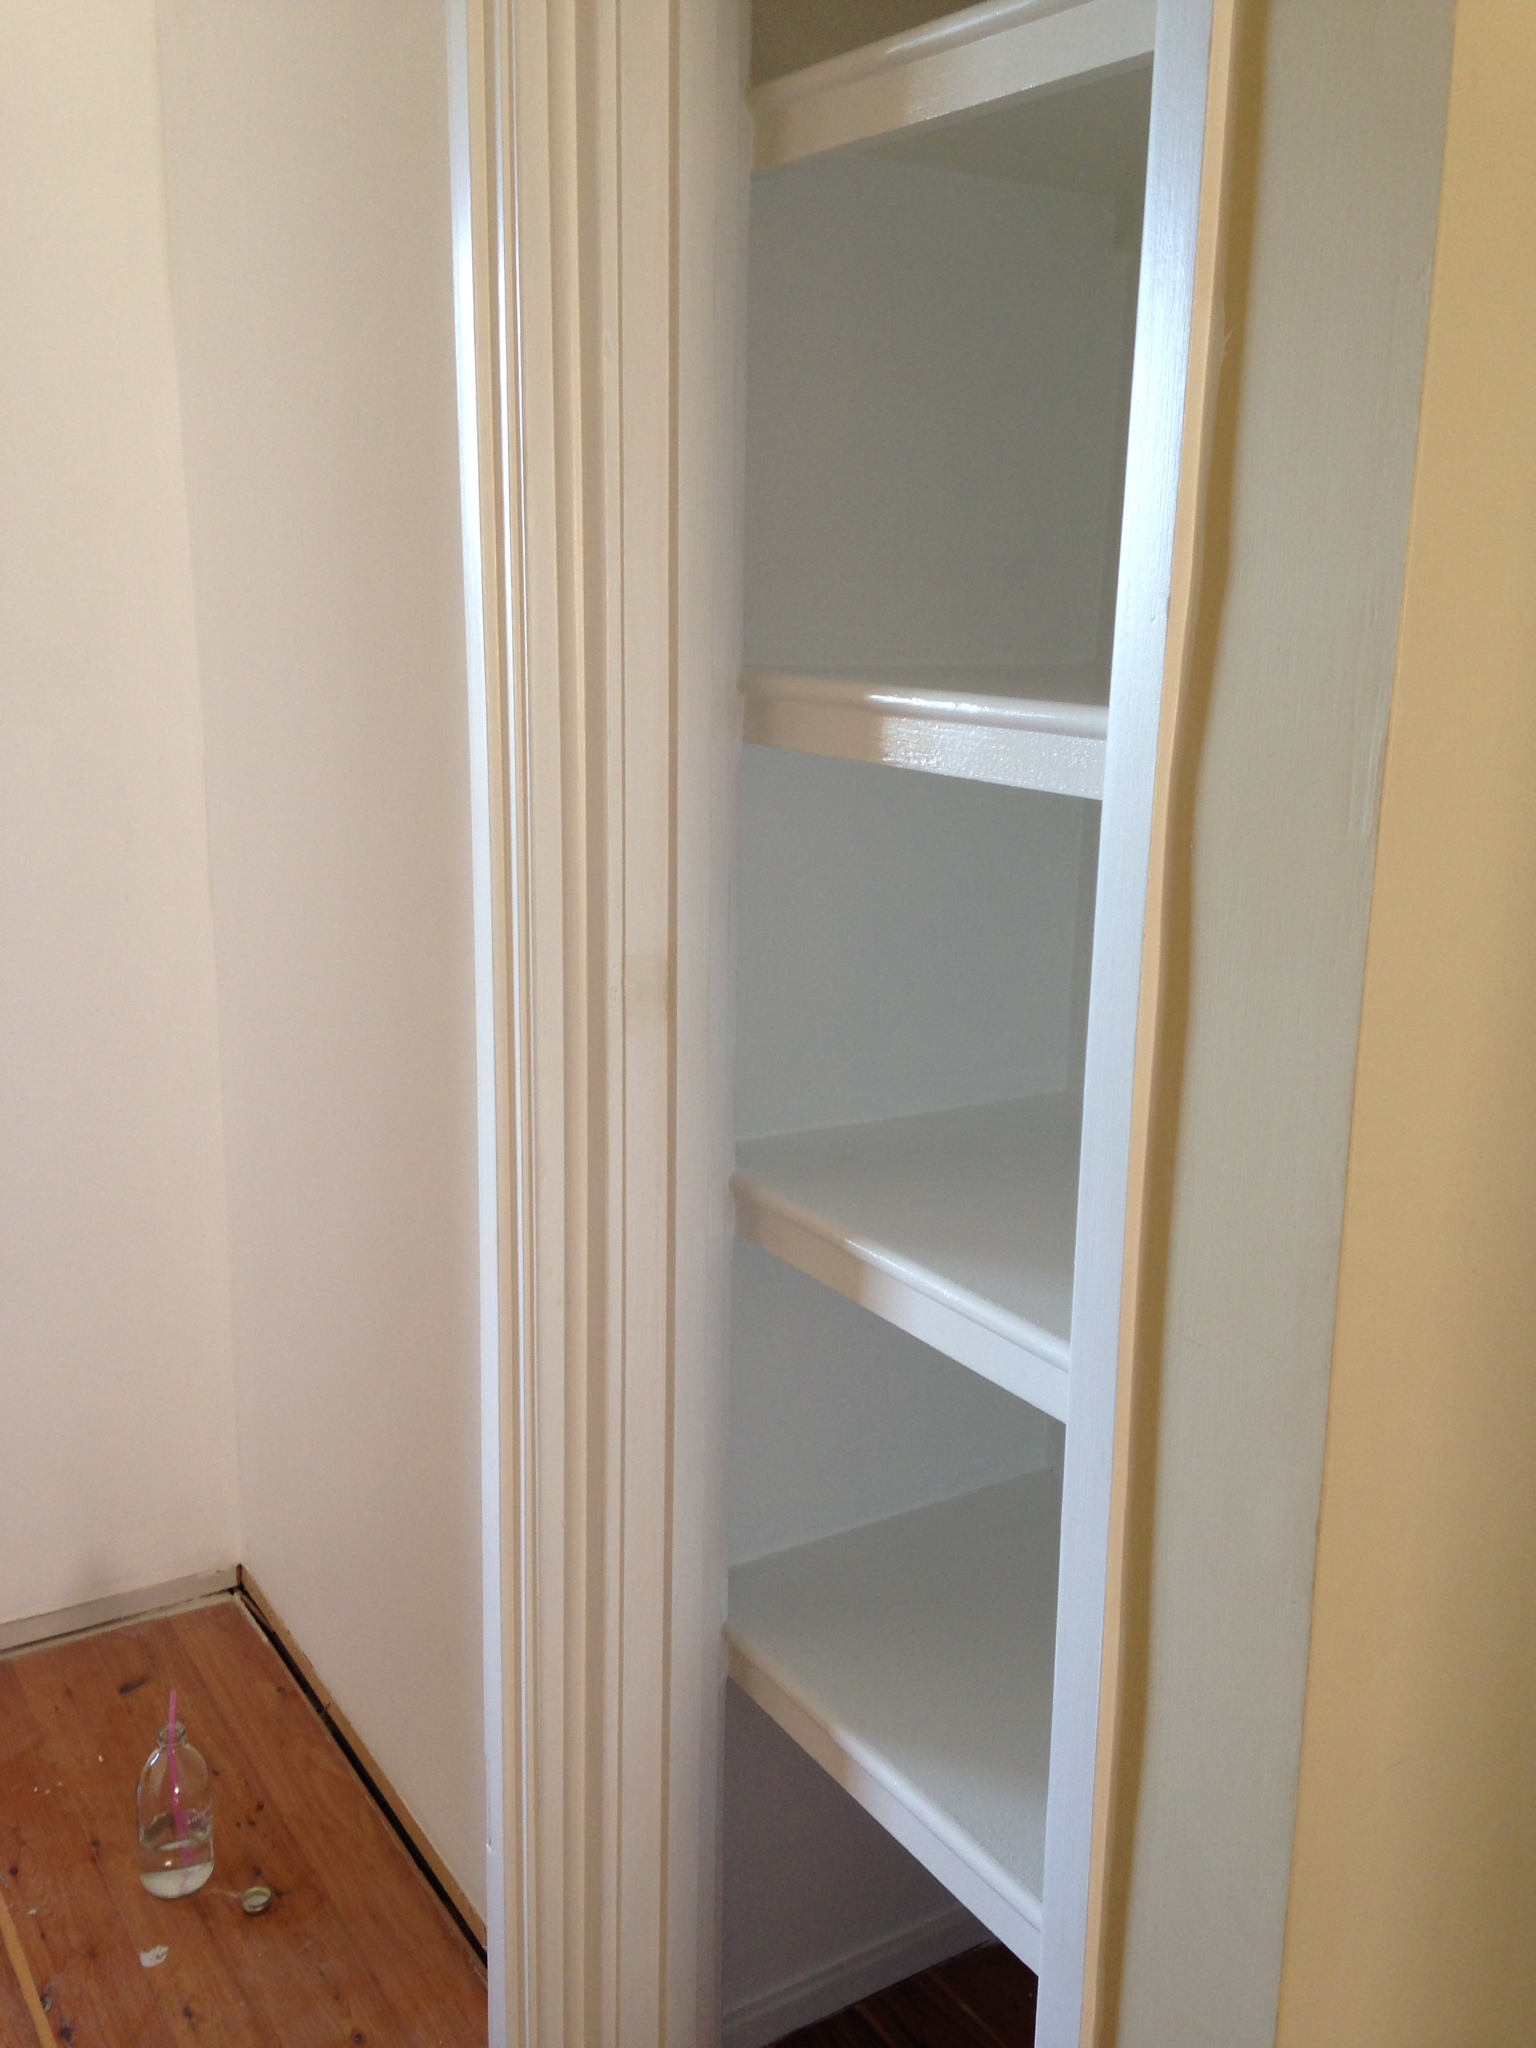 Hall cupboard in the process of being painted in Dulux Vivid White and a glimpse of Ashleigh's bedroom painted in Dulux Natural White